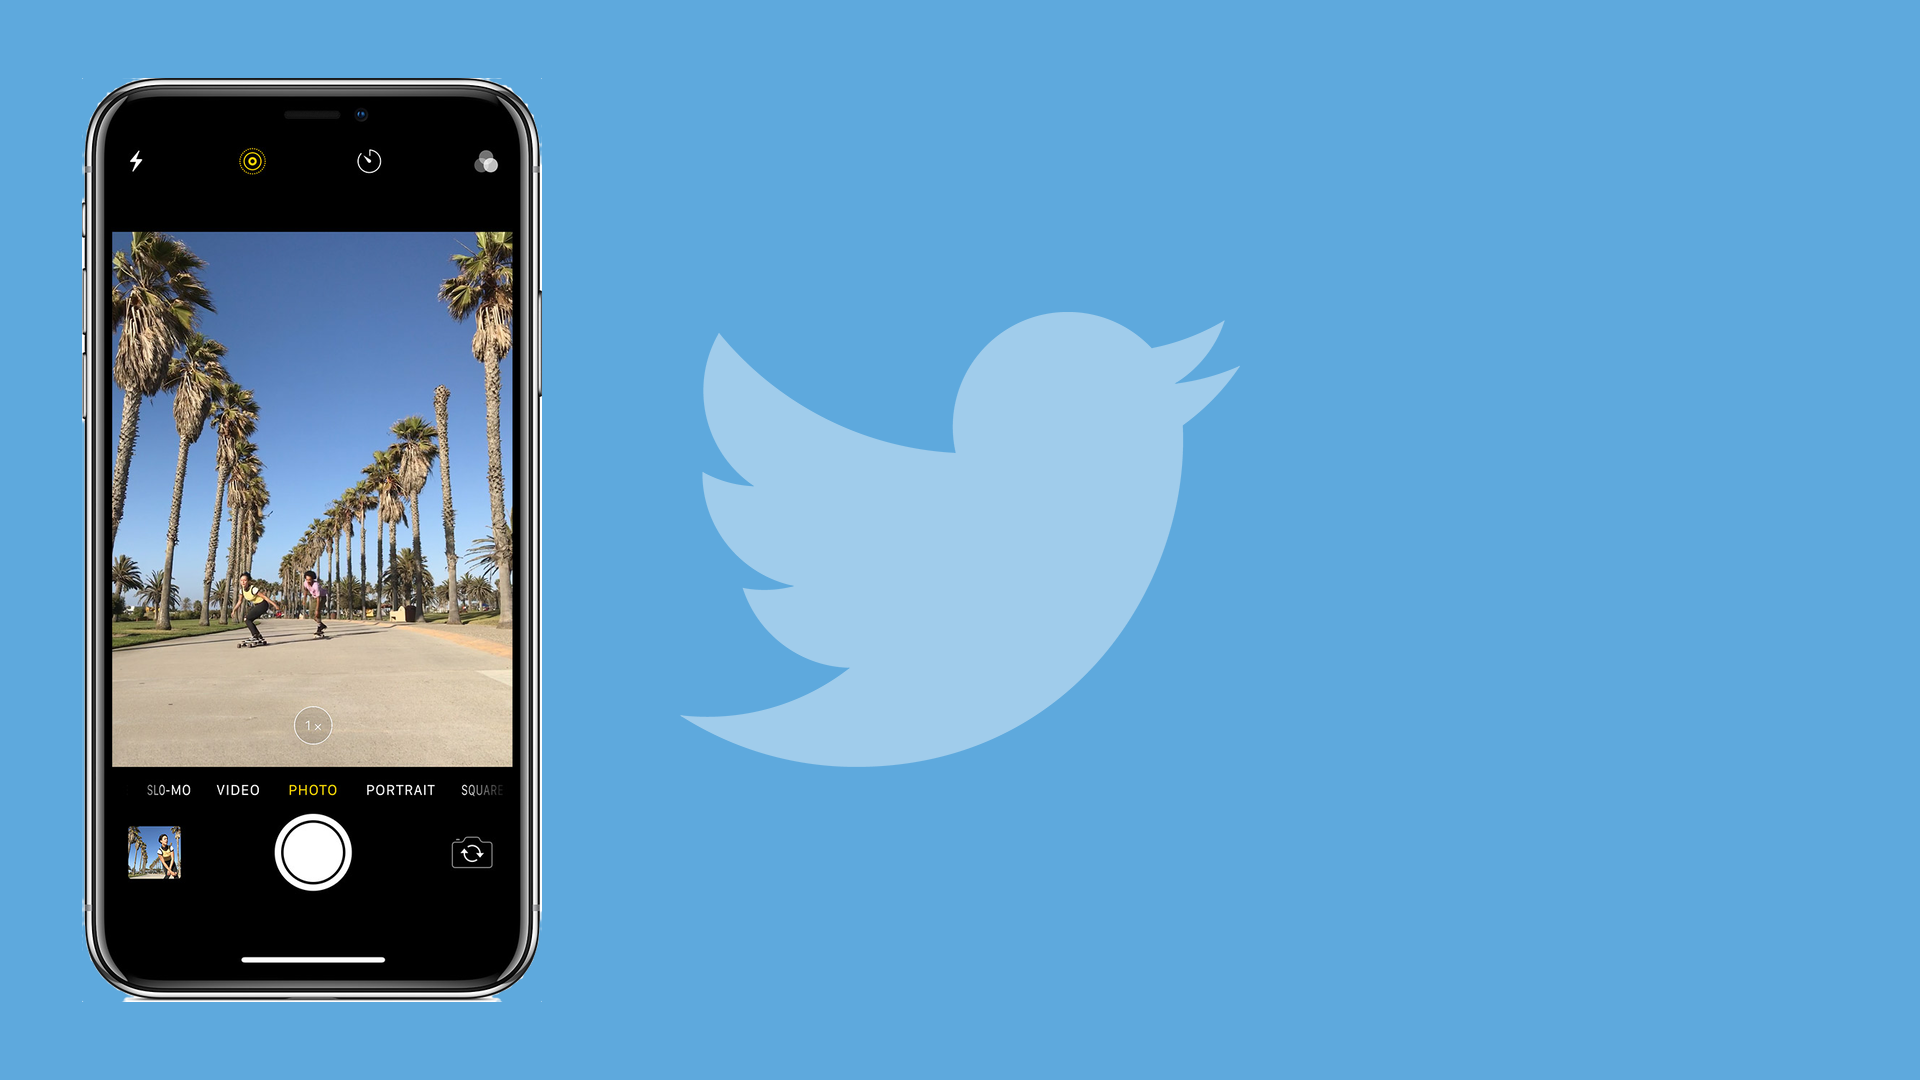 photo of Twitter teases new features for iOS including Live Photos support, following topics, more image